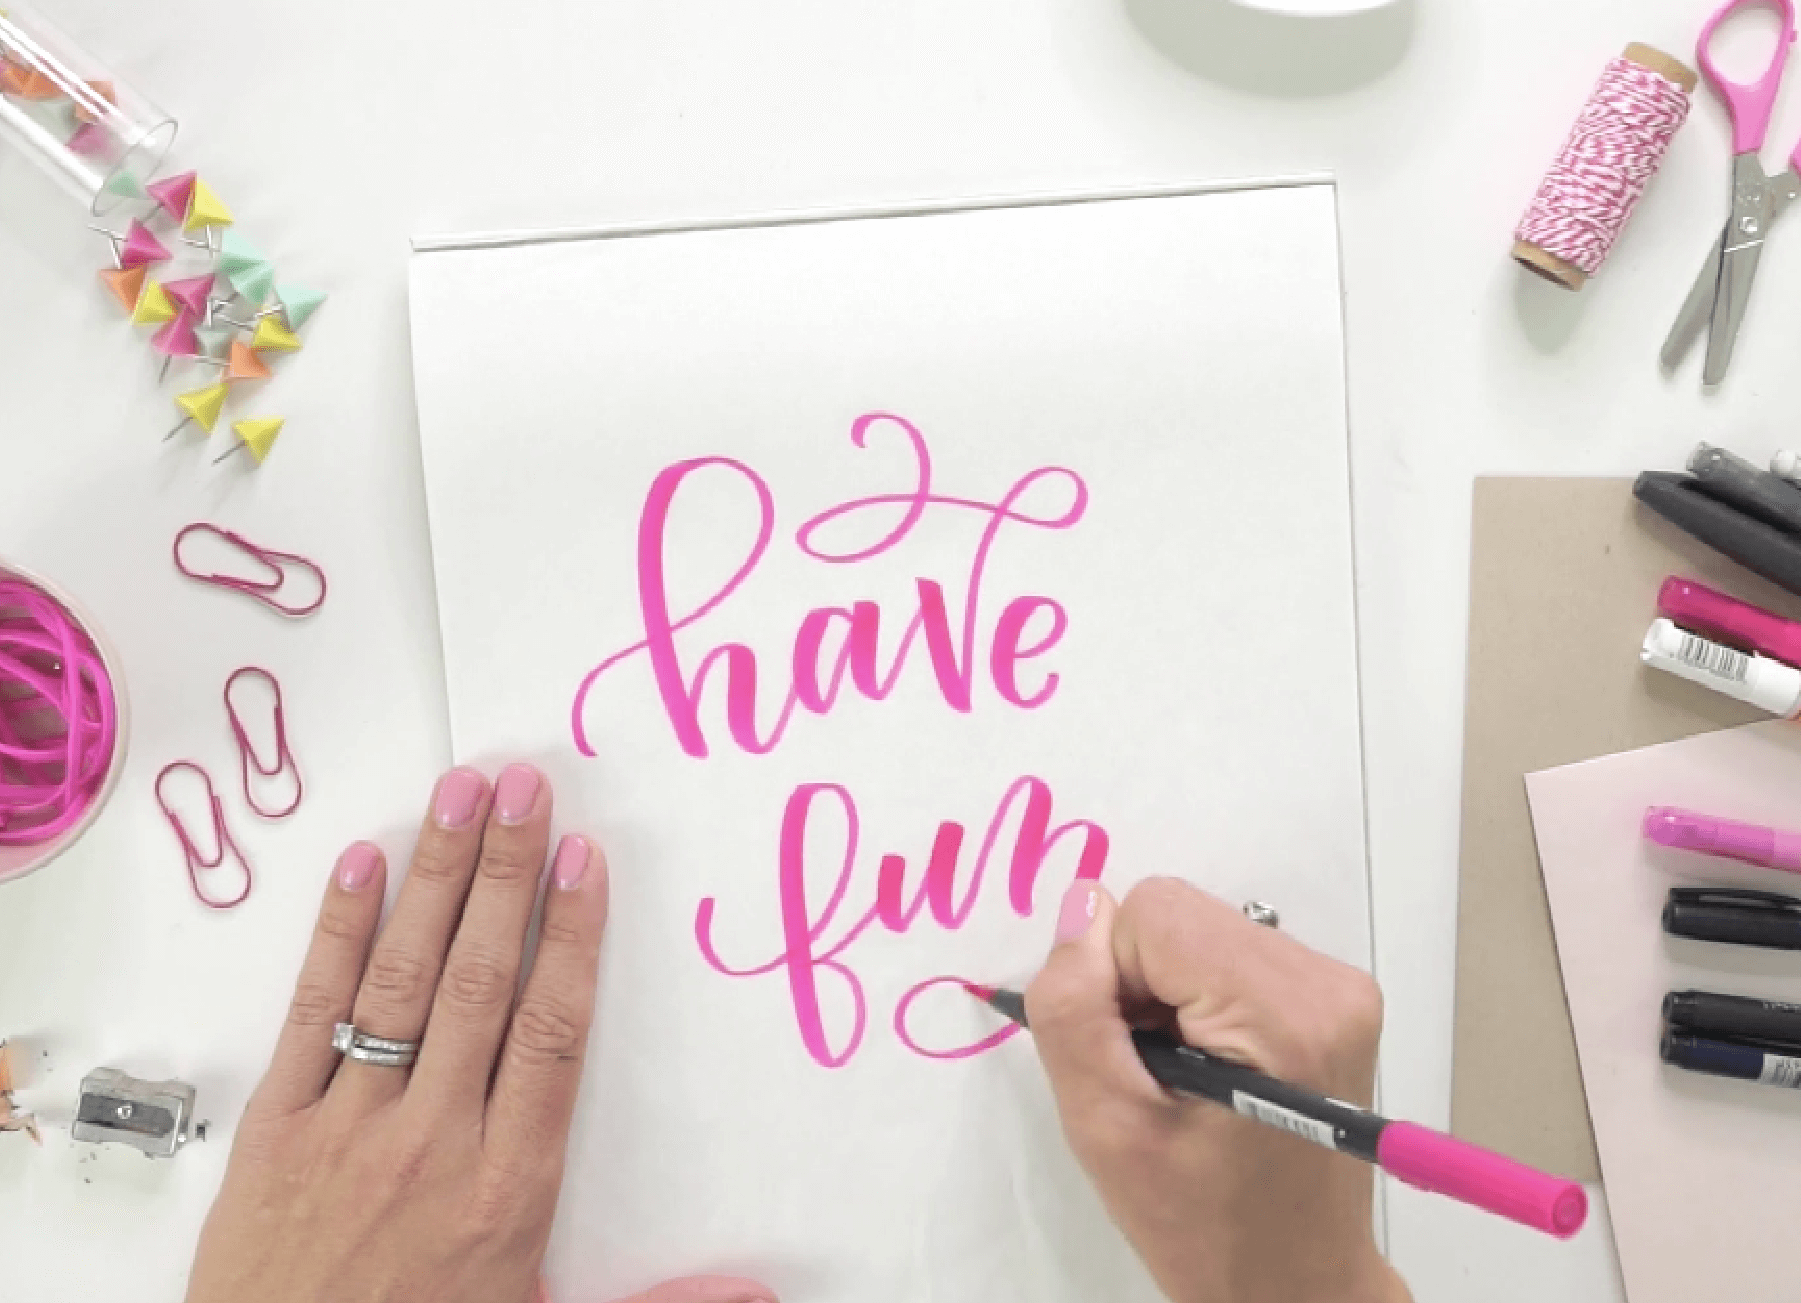 Learn how to hand letter and create your own hand lettered masterpieces with this online video course from Amanda Arneill at amandaarneill.com